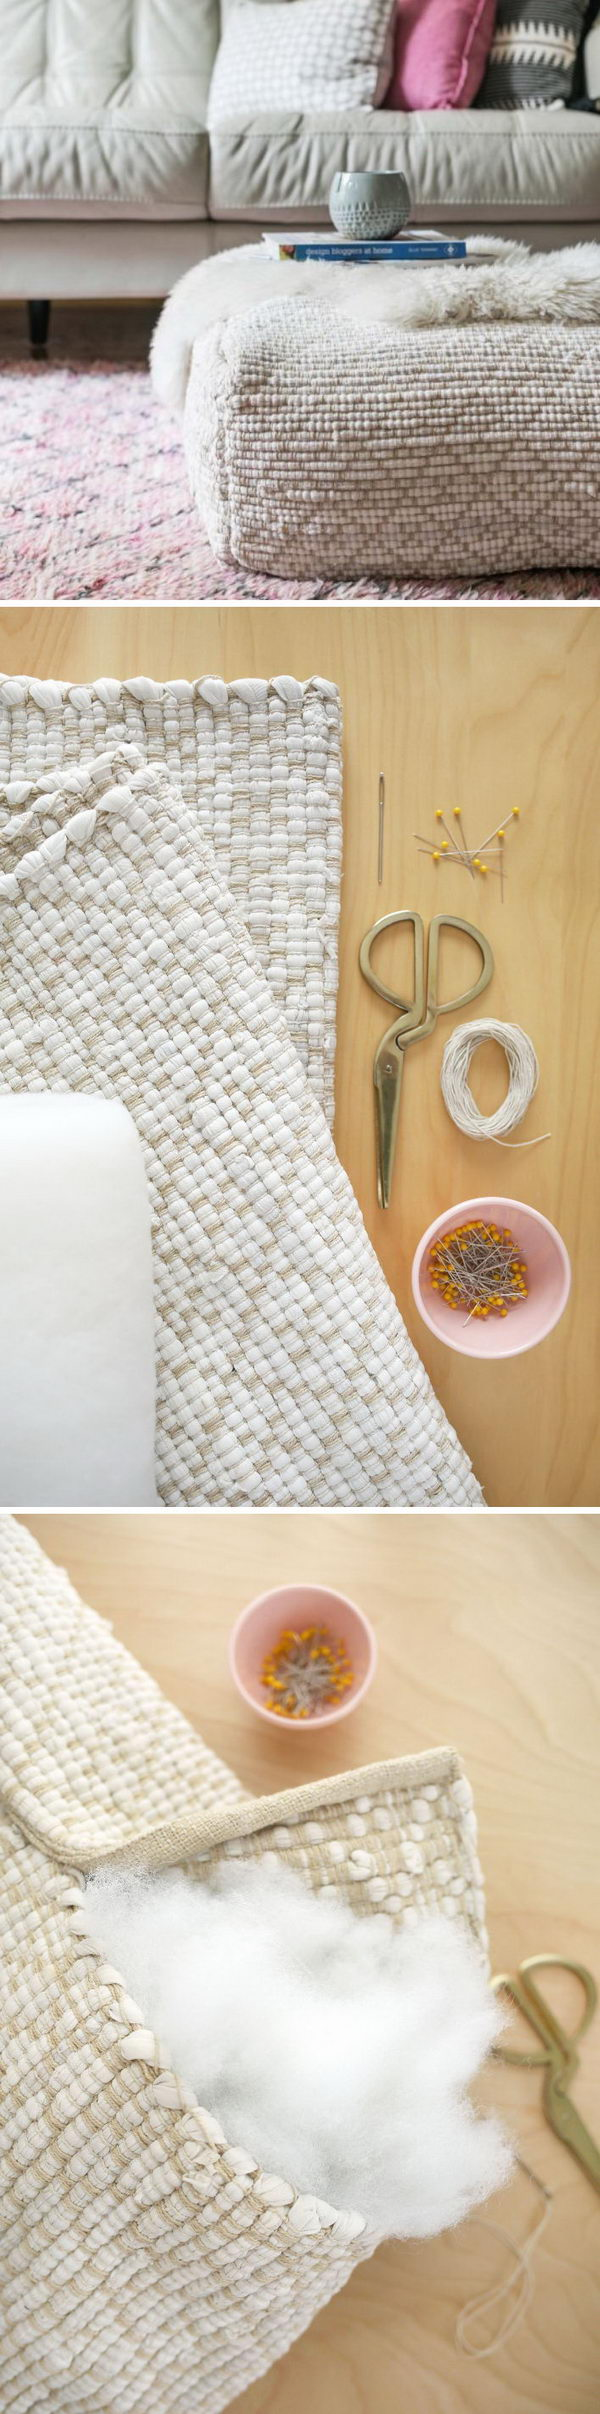 DIY Floor Pouf From Existing Rugs.